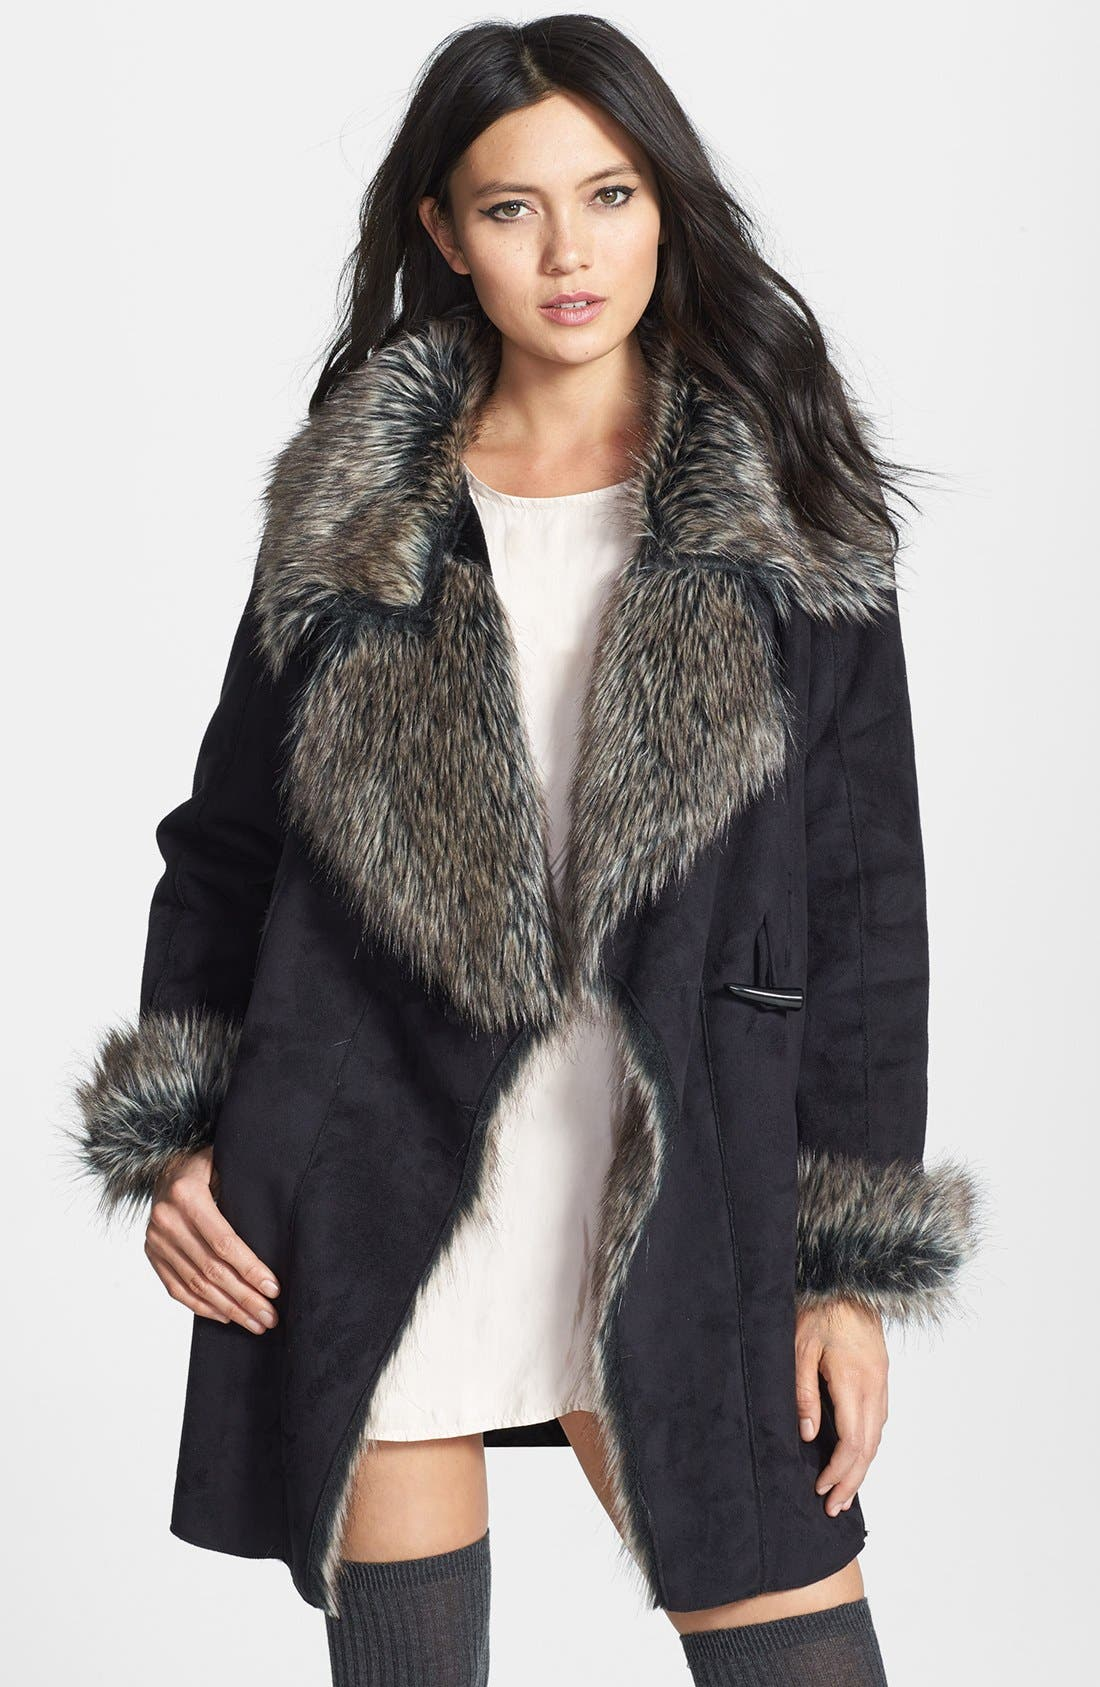 Alternate Image 1 Selected - Romeo & Juliet Couture Faux Fur Trim Faux Suede Jacket